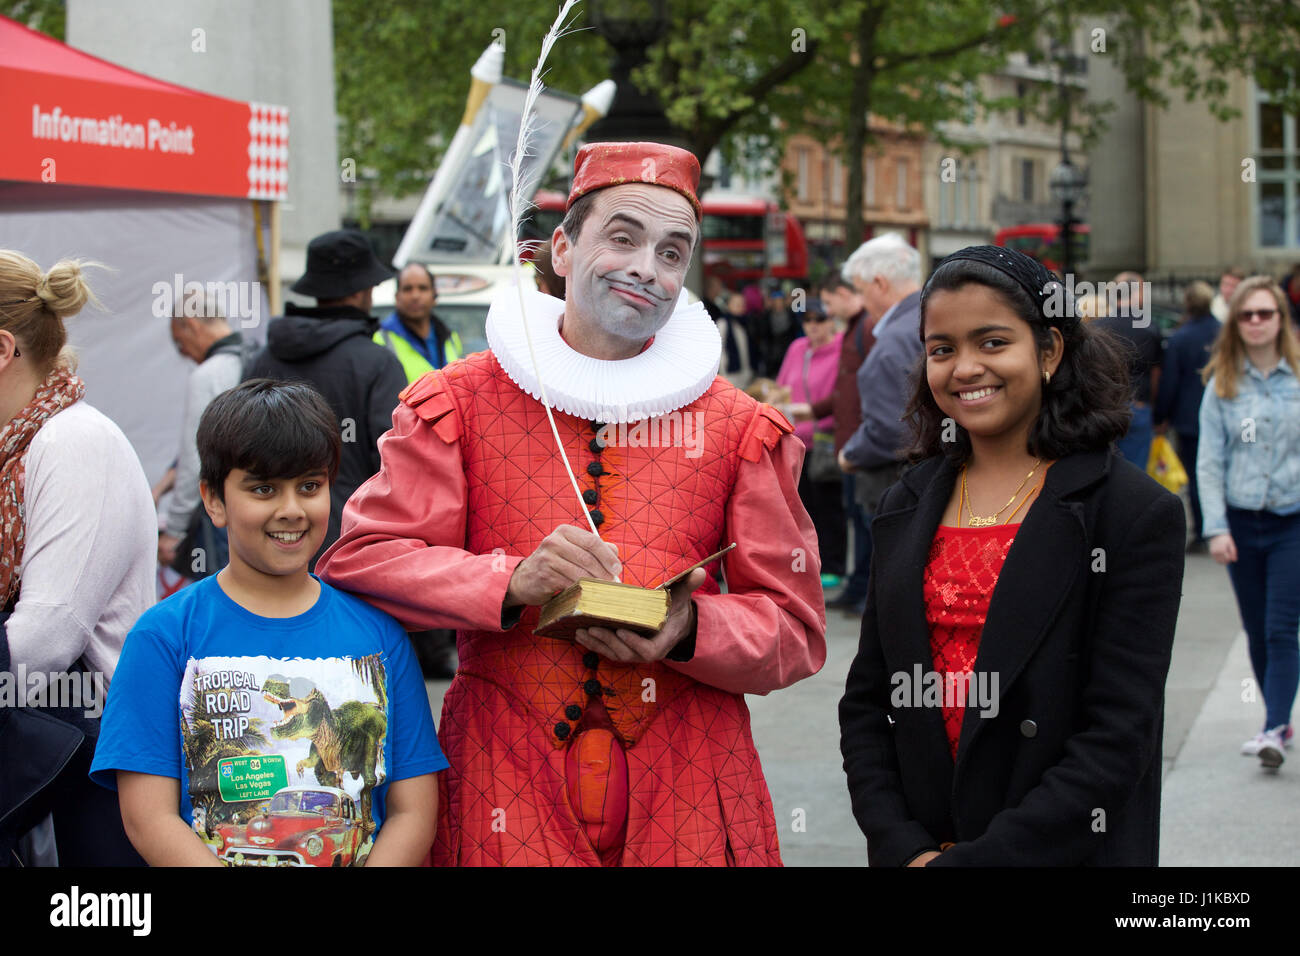 Trafalgar Square,UK,22nd April 2017,The Annual Feast of St George celebrations took place in Trafalgar Square London - Stock Image